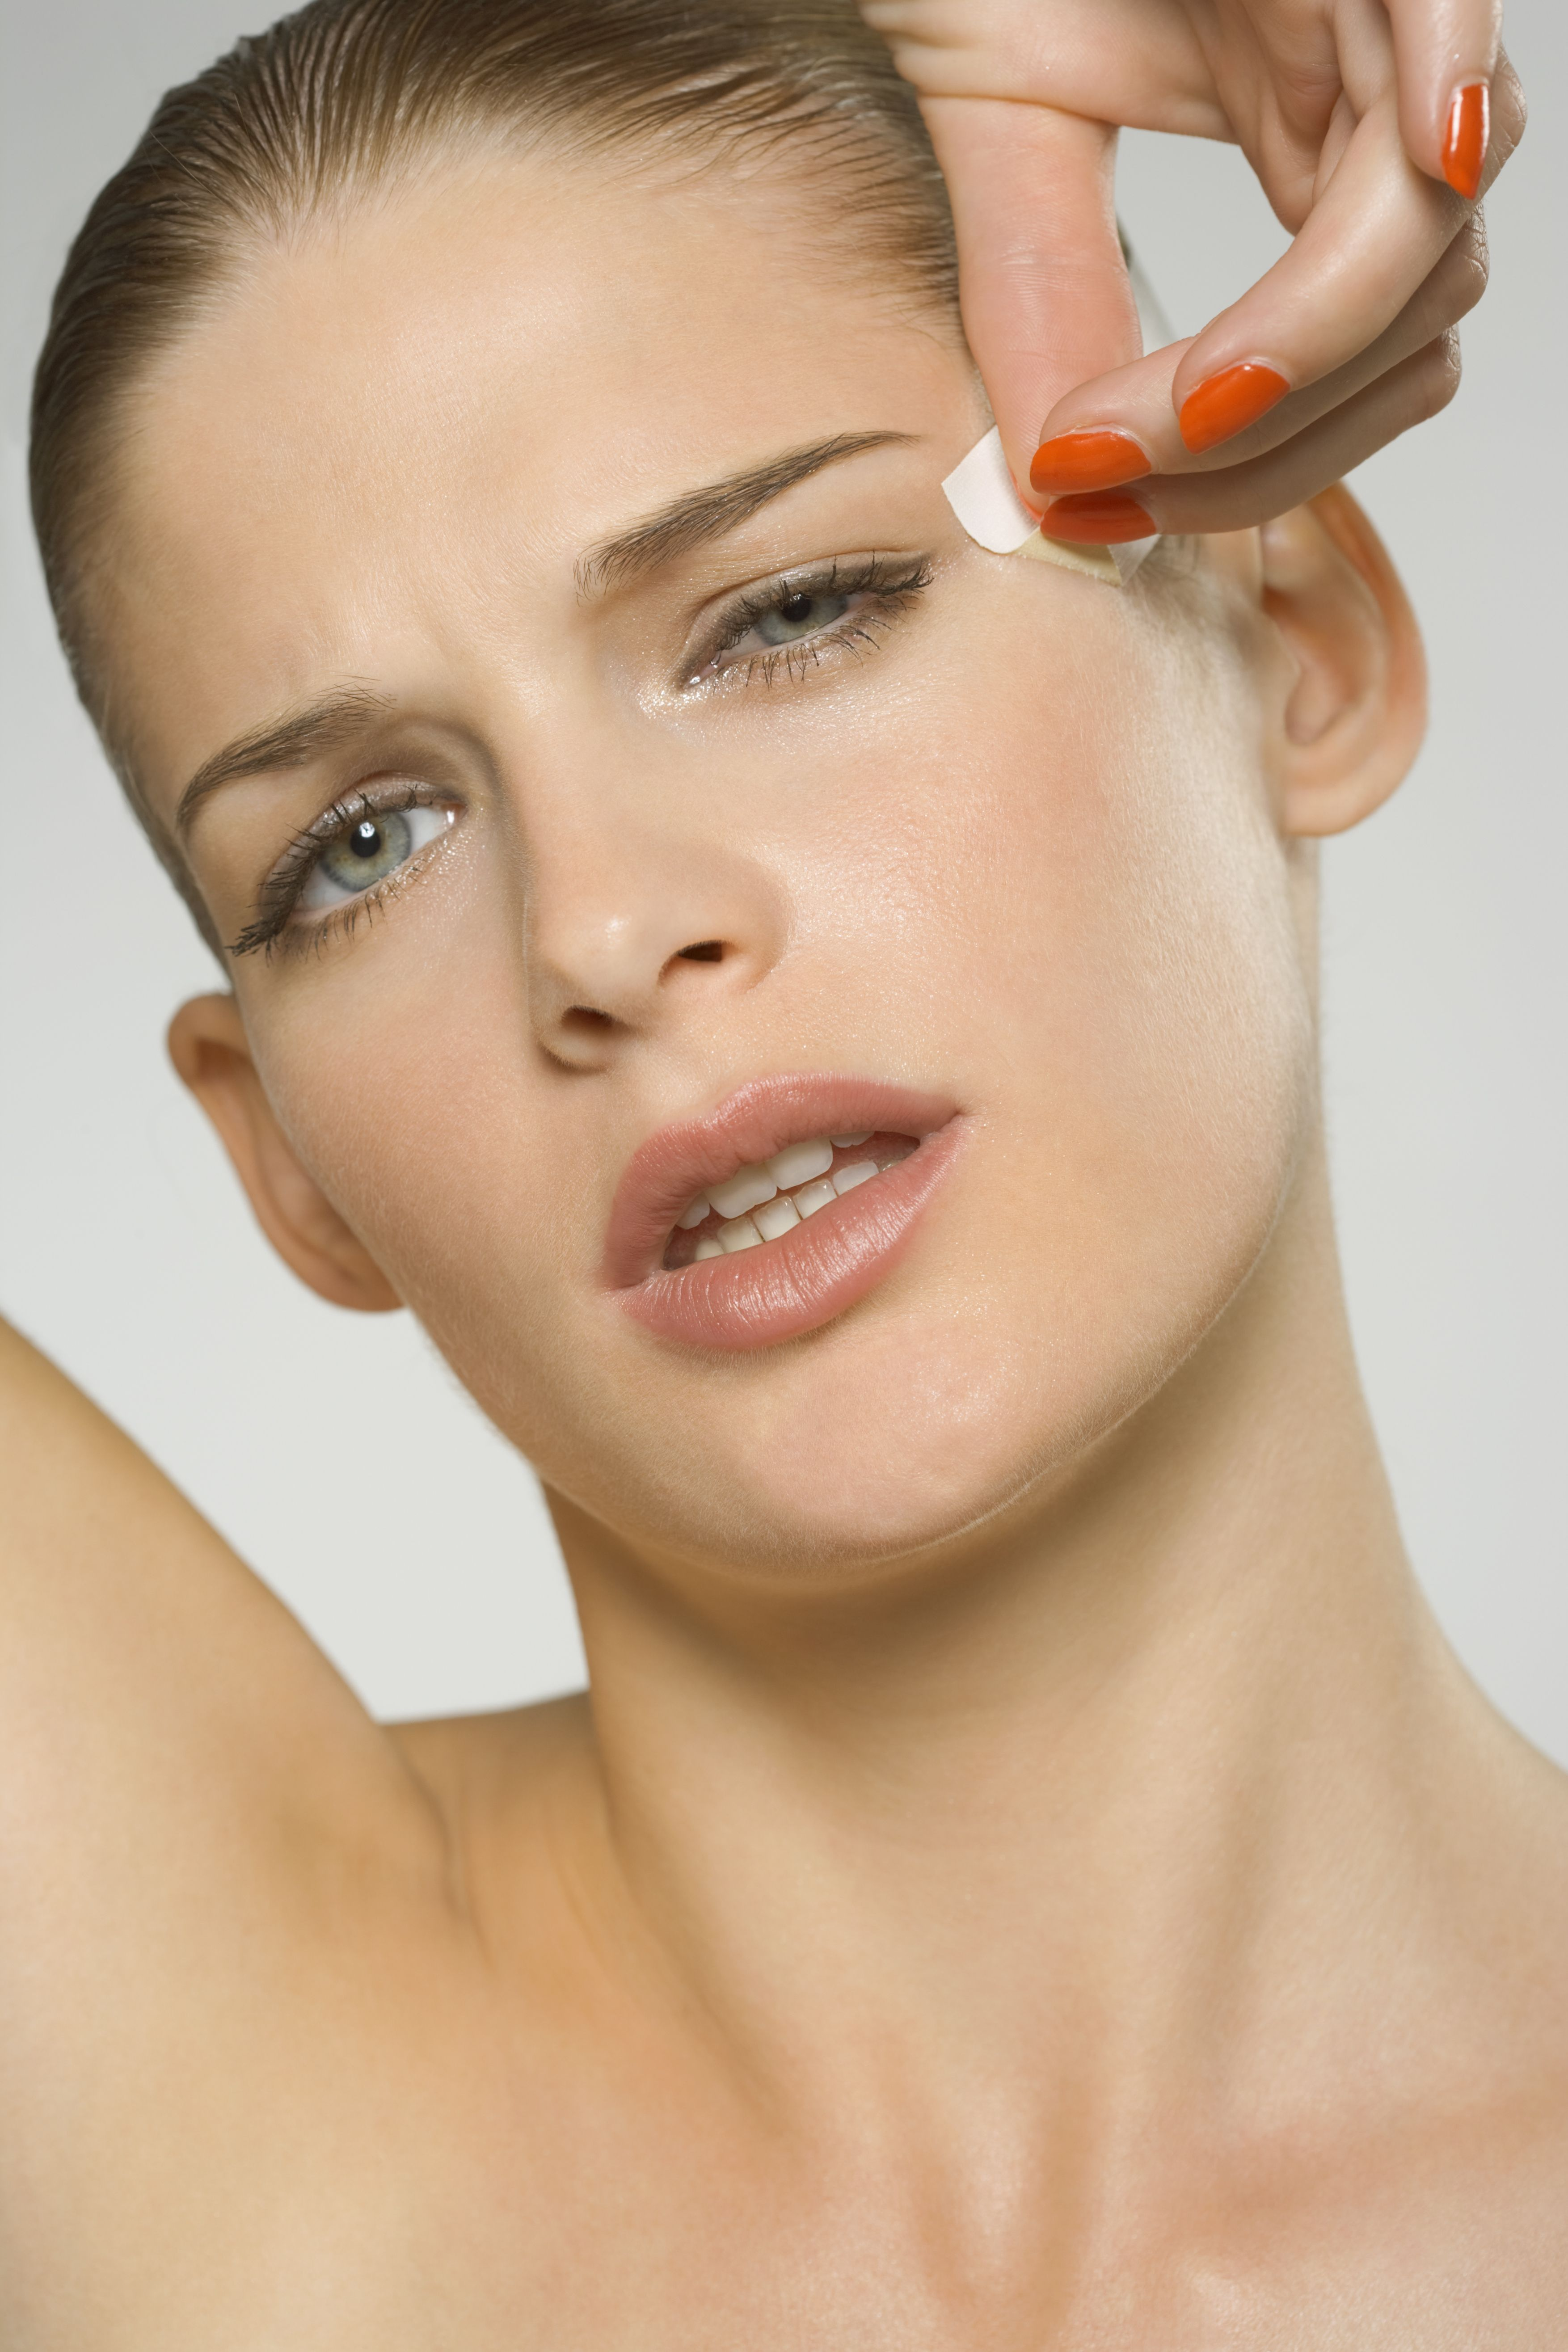 images Worst beauty treatments that causes harm to you